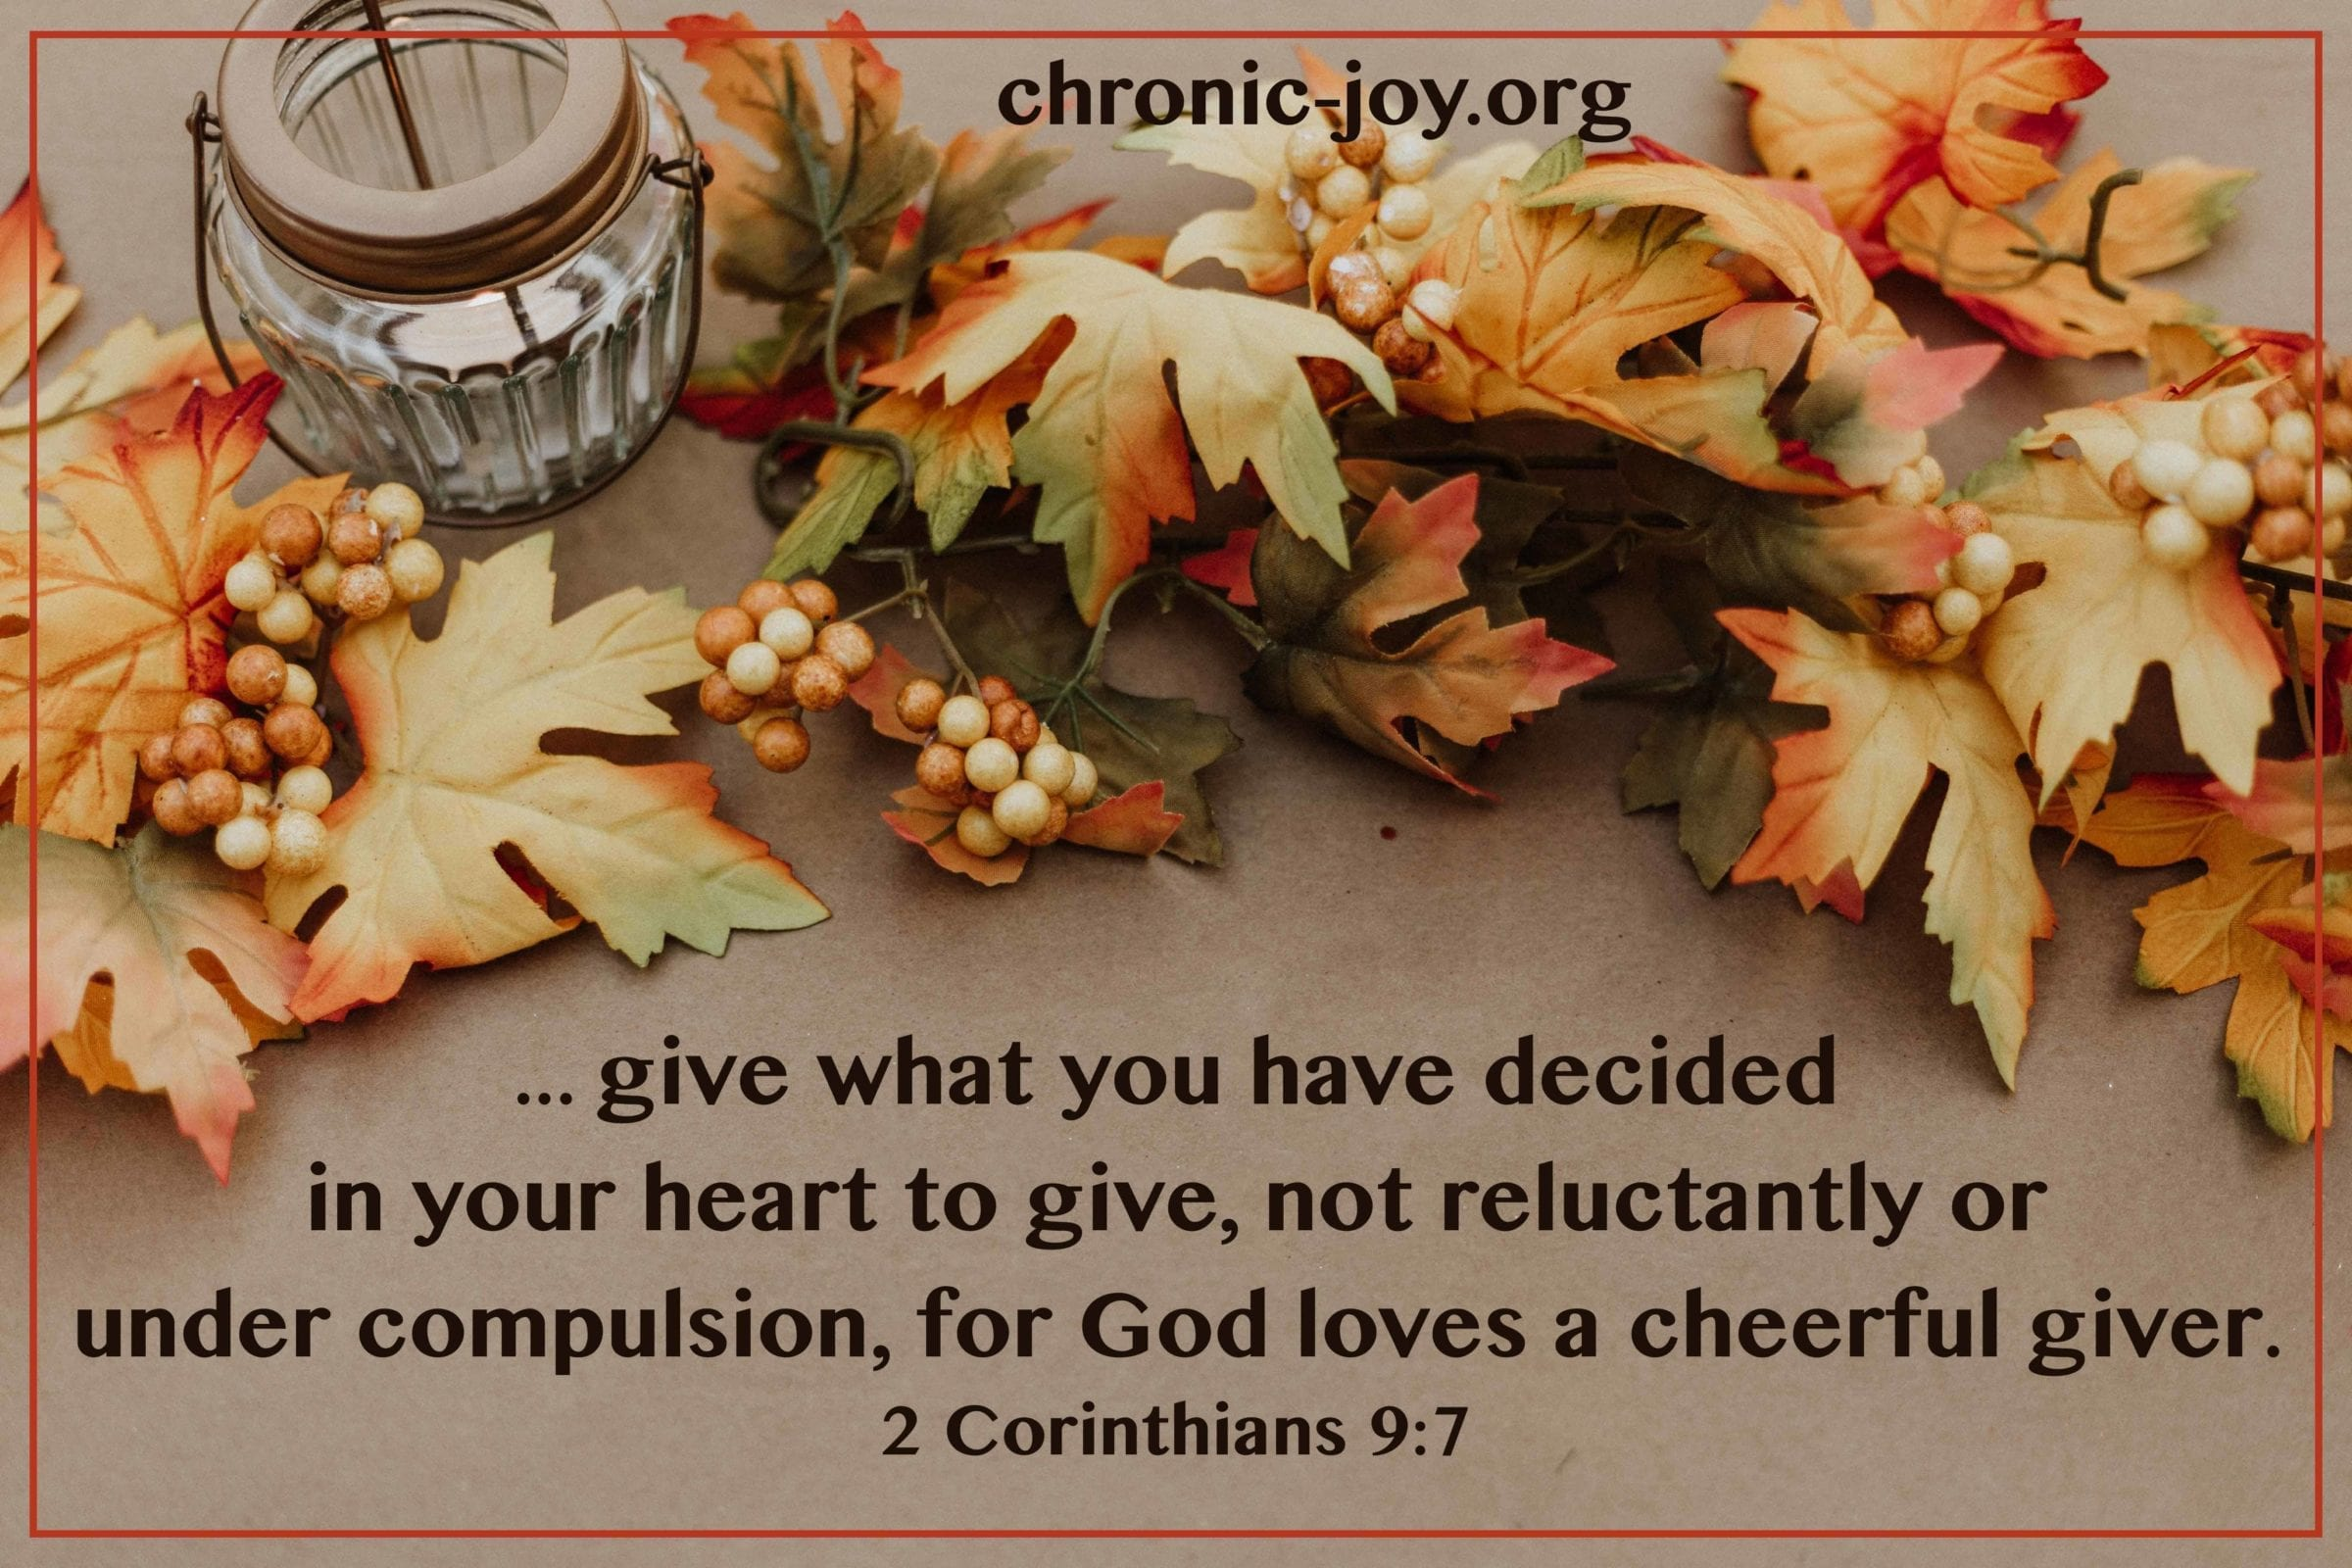 Give what you have decided in your heart to give...for God loves a cheerful giver. 2 Corinthians 9:7